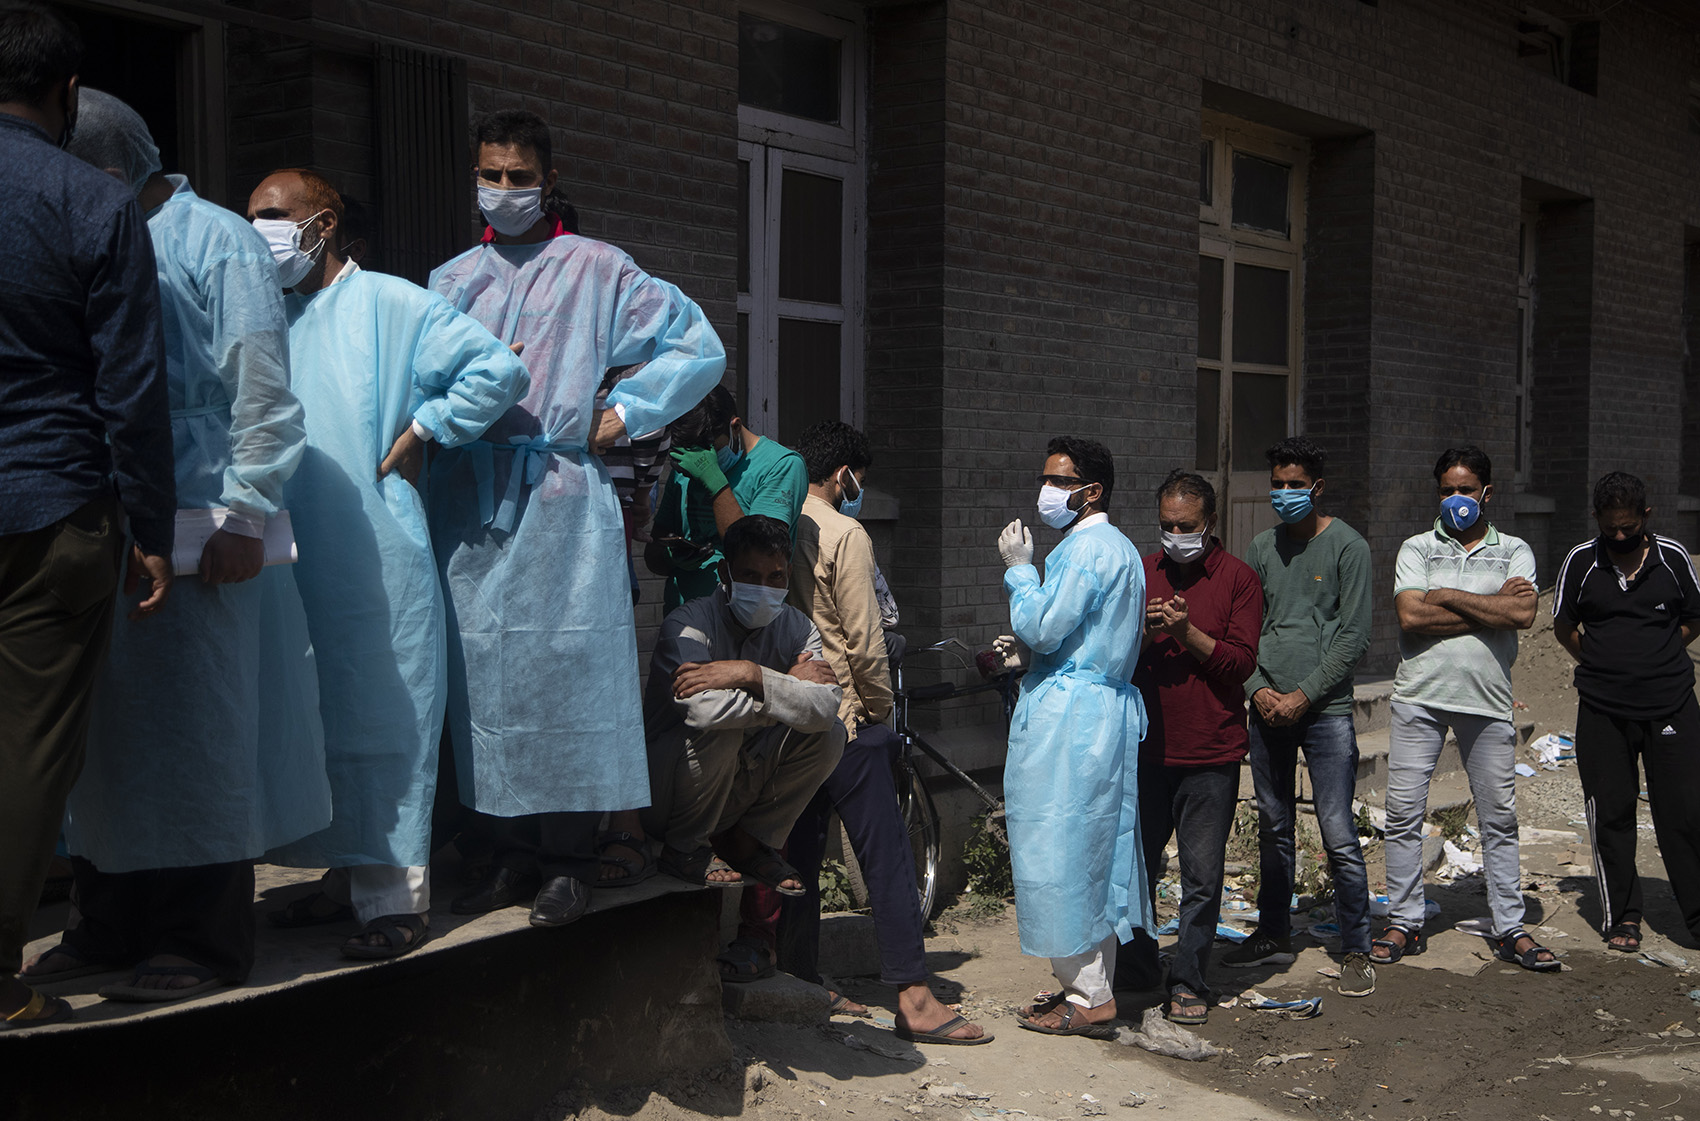 Relatives and bystanders, some of them wearing protective suits, line up to get oxygen cylinders for patients outside a hospital in Srinagar, Indian controlled Kashmir, on Wednesday, August 12.